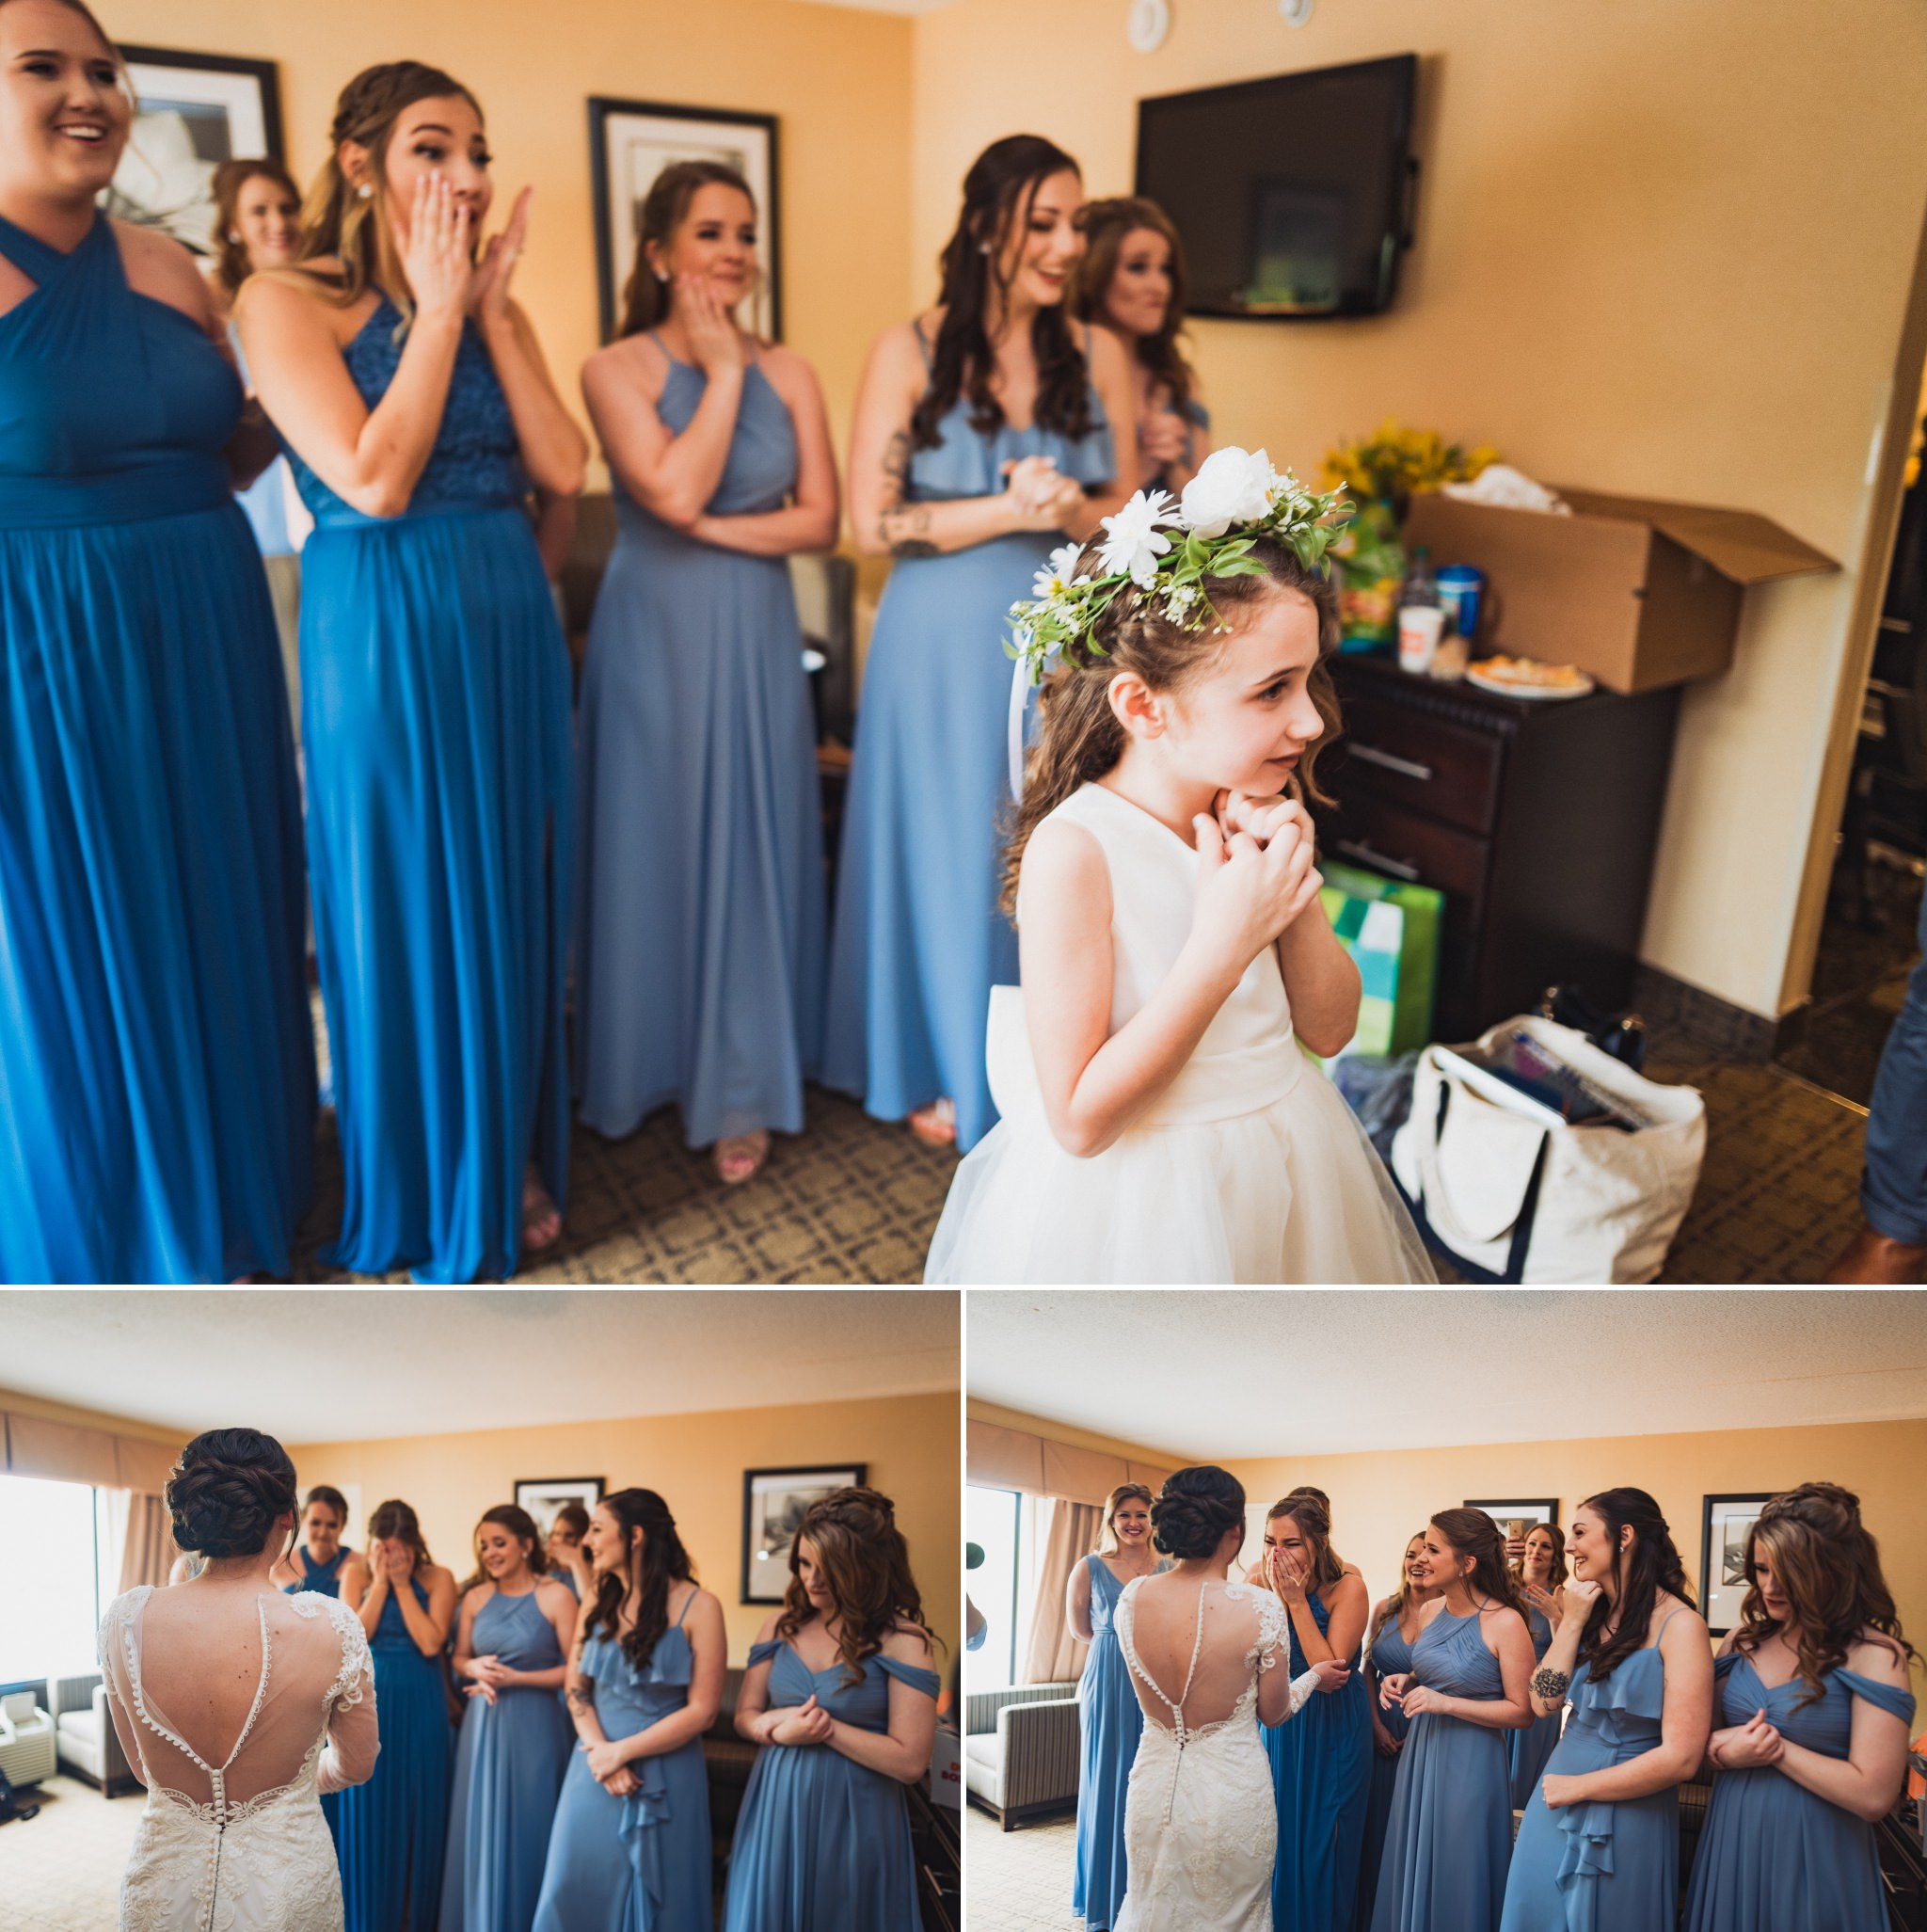 Scenes from the bridesmaid first look at Kelly in her wedding dress. One of her flower girls was in front because she was to open the door, revealing Kelly.